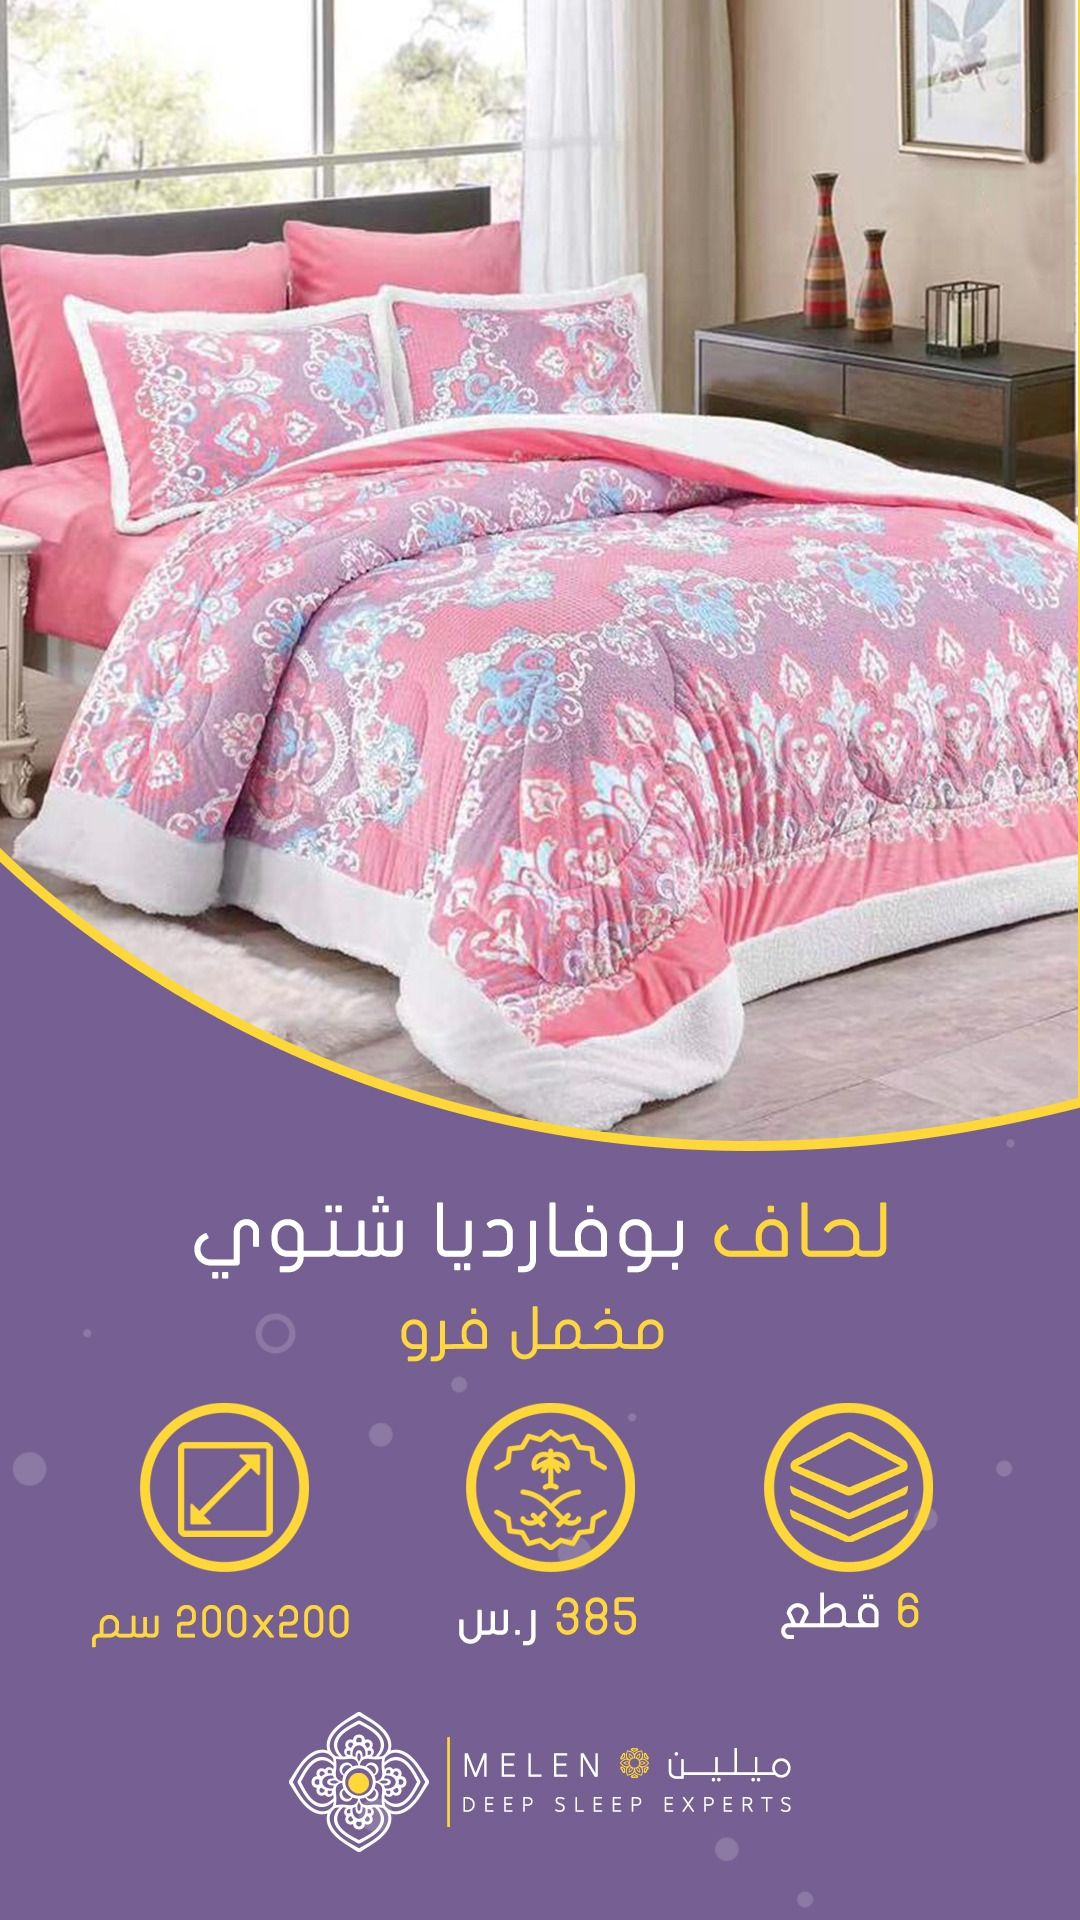 احدث كتالوج صور غرف نوم 2021 Bedroom Designs Bedroom Furniture Design Bedroom Bed Design Luxury Bedroom Master